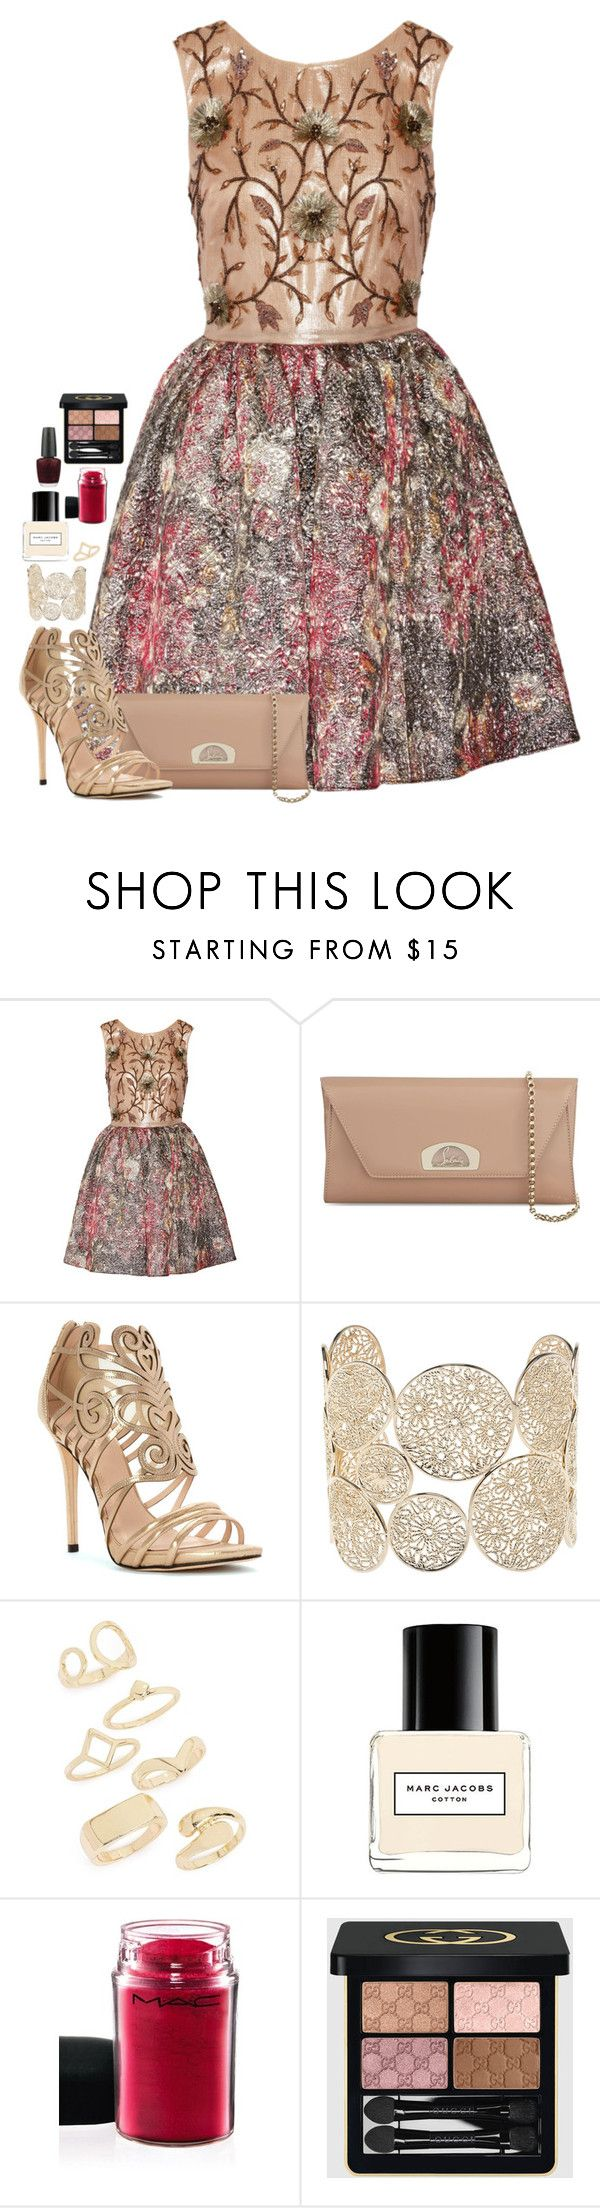 """""""Silver Lining"""" by cora97 ❤ liked on Polyvore featuring Notte by Marchesa, Christian Louboutin, Klub Nico, Isharya, Topshop, Marc Jacobs, MAC Cosmetics, Gucci and OPI"""